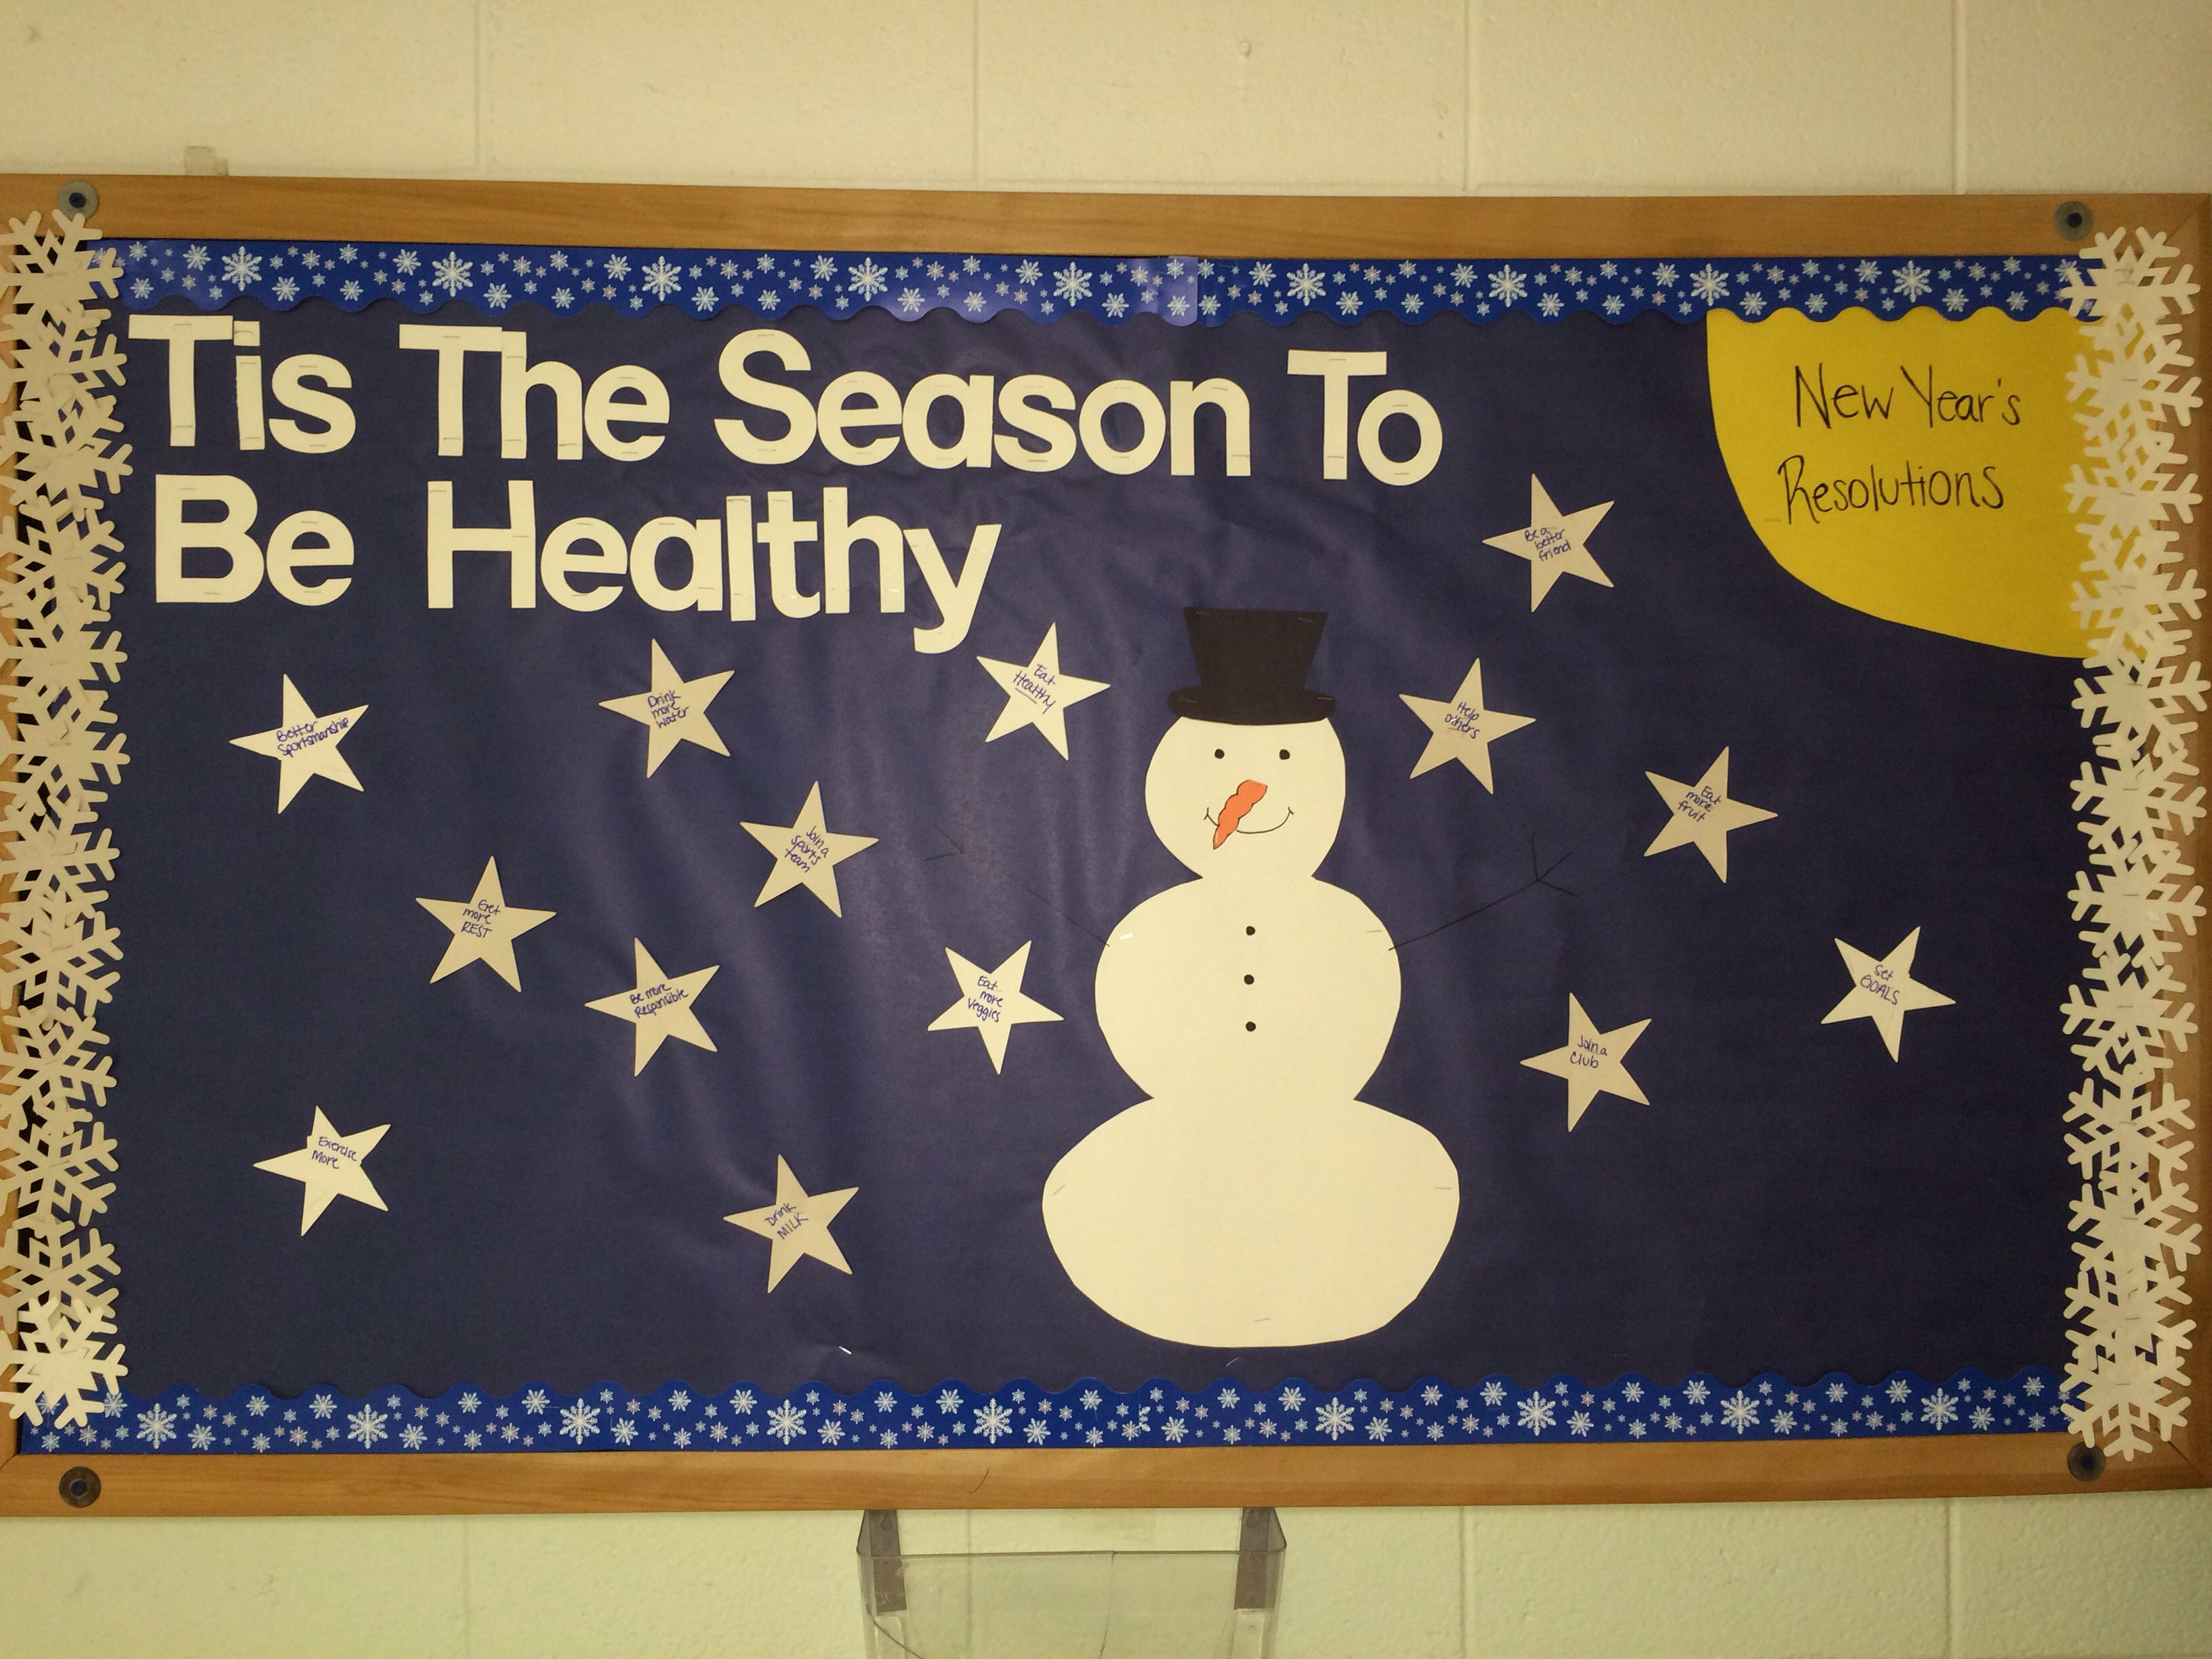 Go green vegetable bulletin board idea myclassroomideas com - Winter Bulletin Board All The Stars Have Ideas For Healthy New Years Resolutions